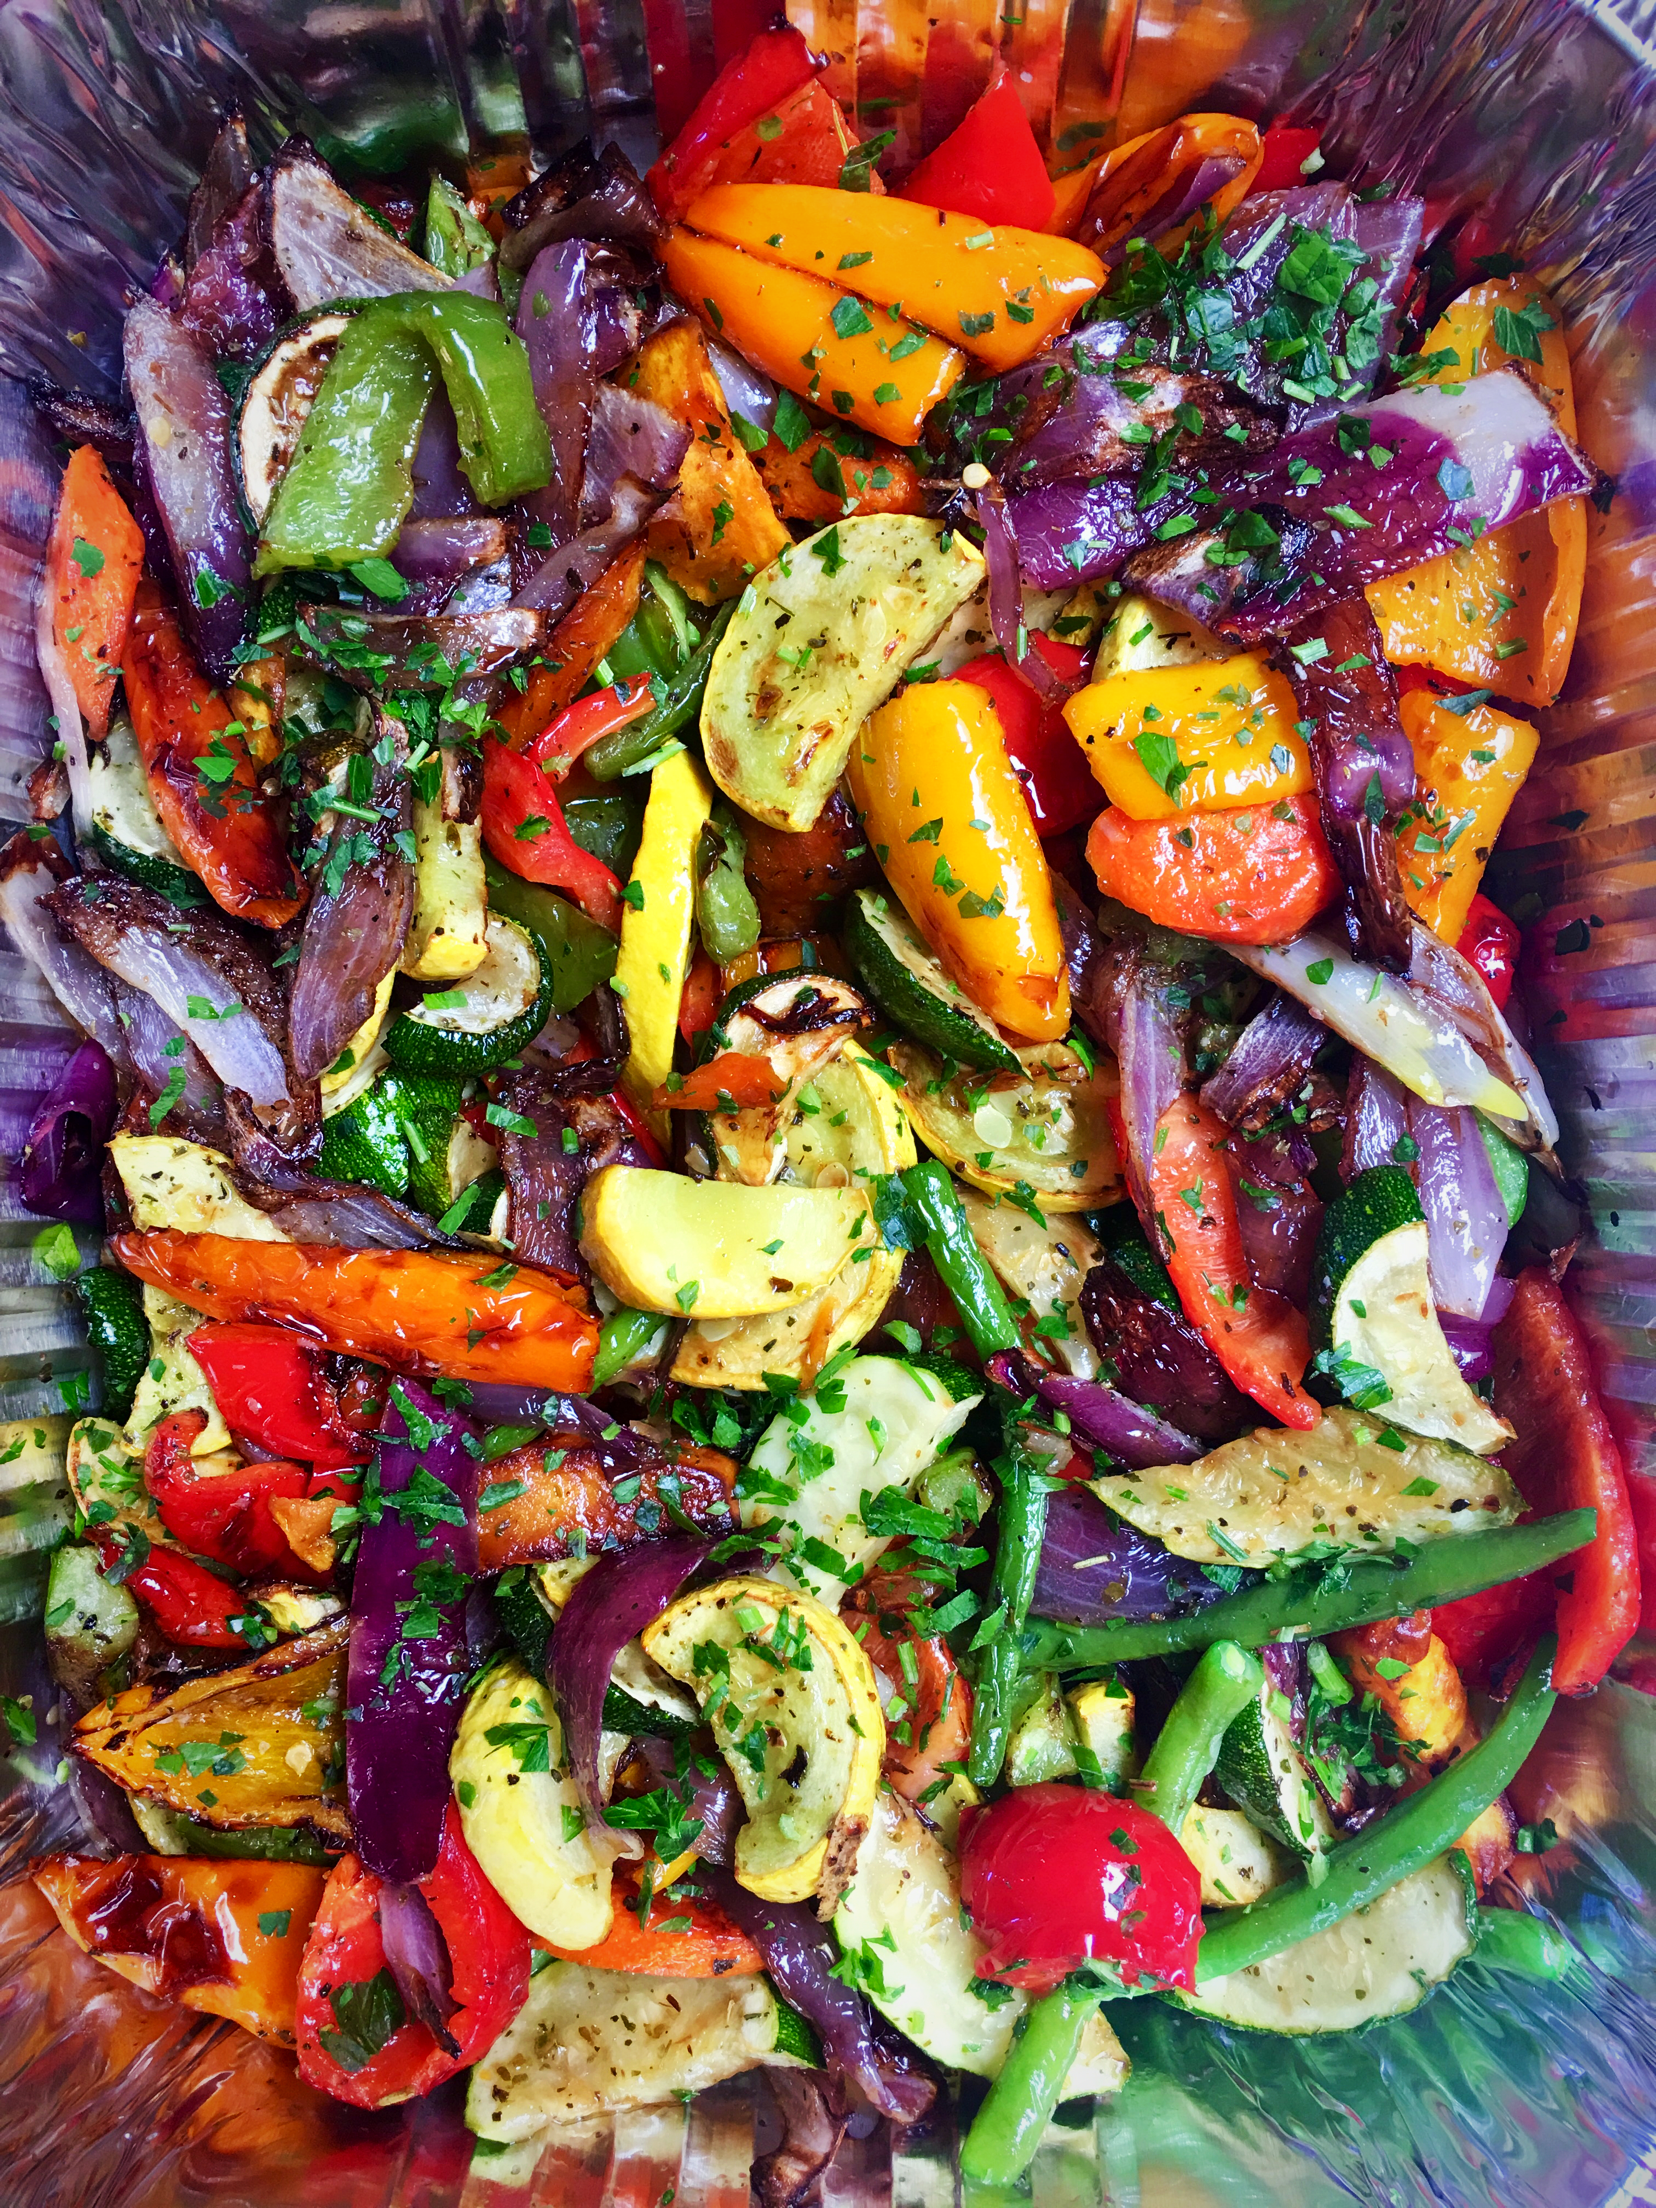 Roasted Veggies Catering